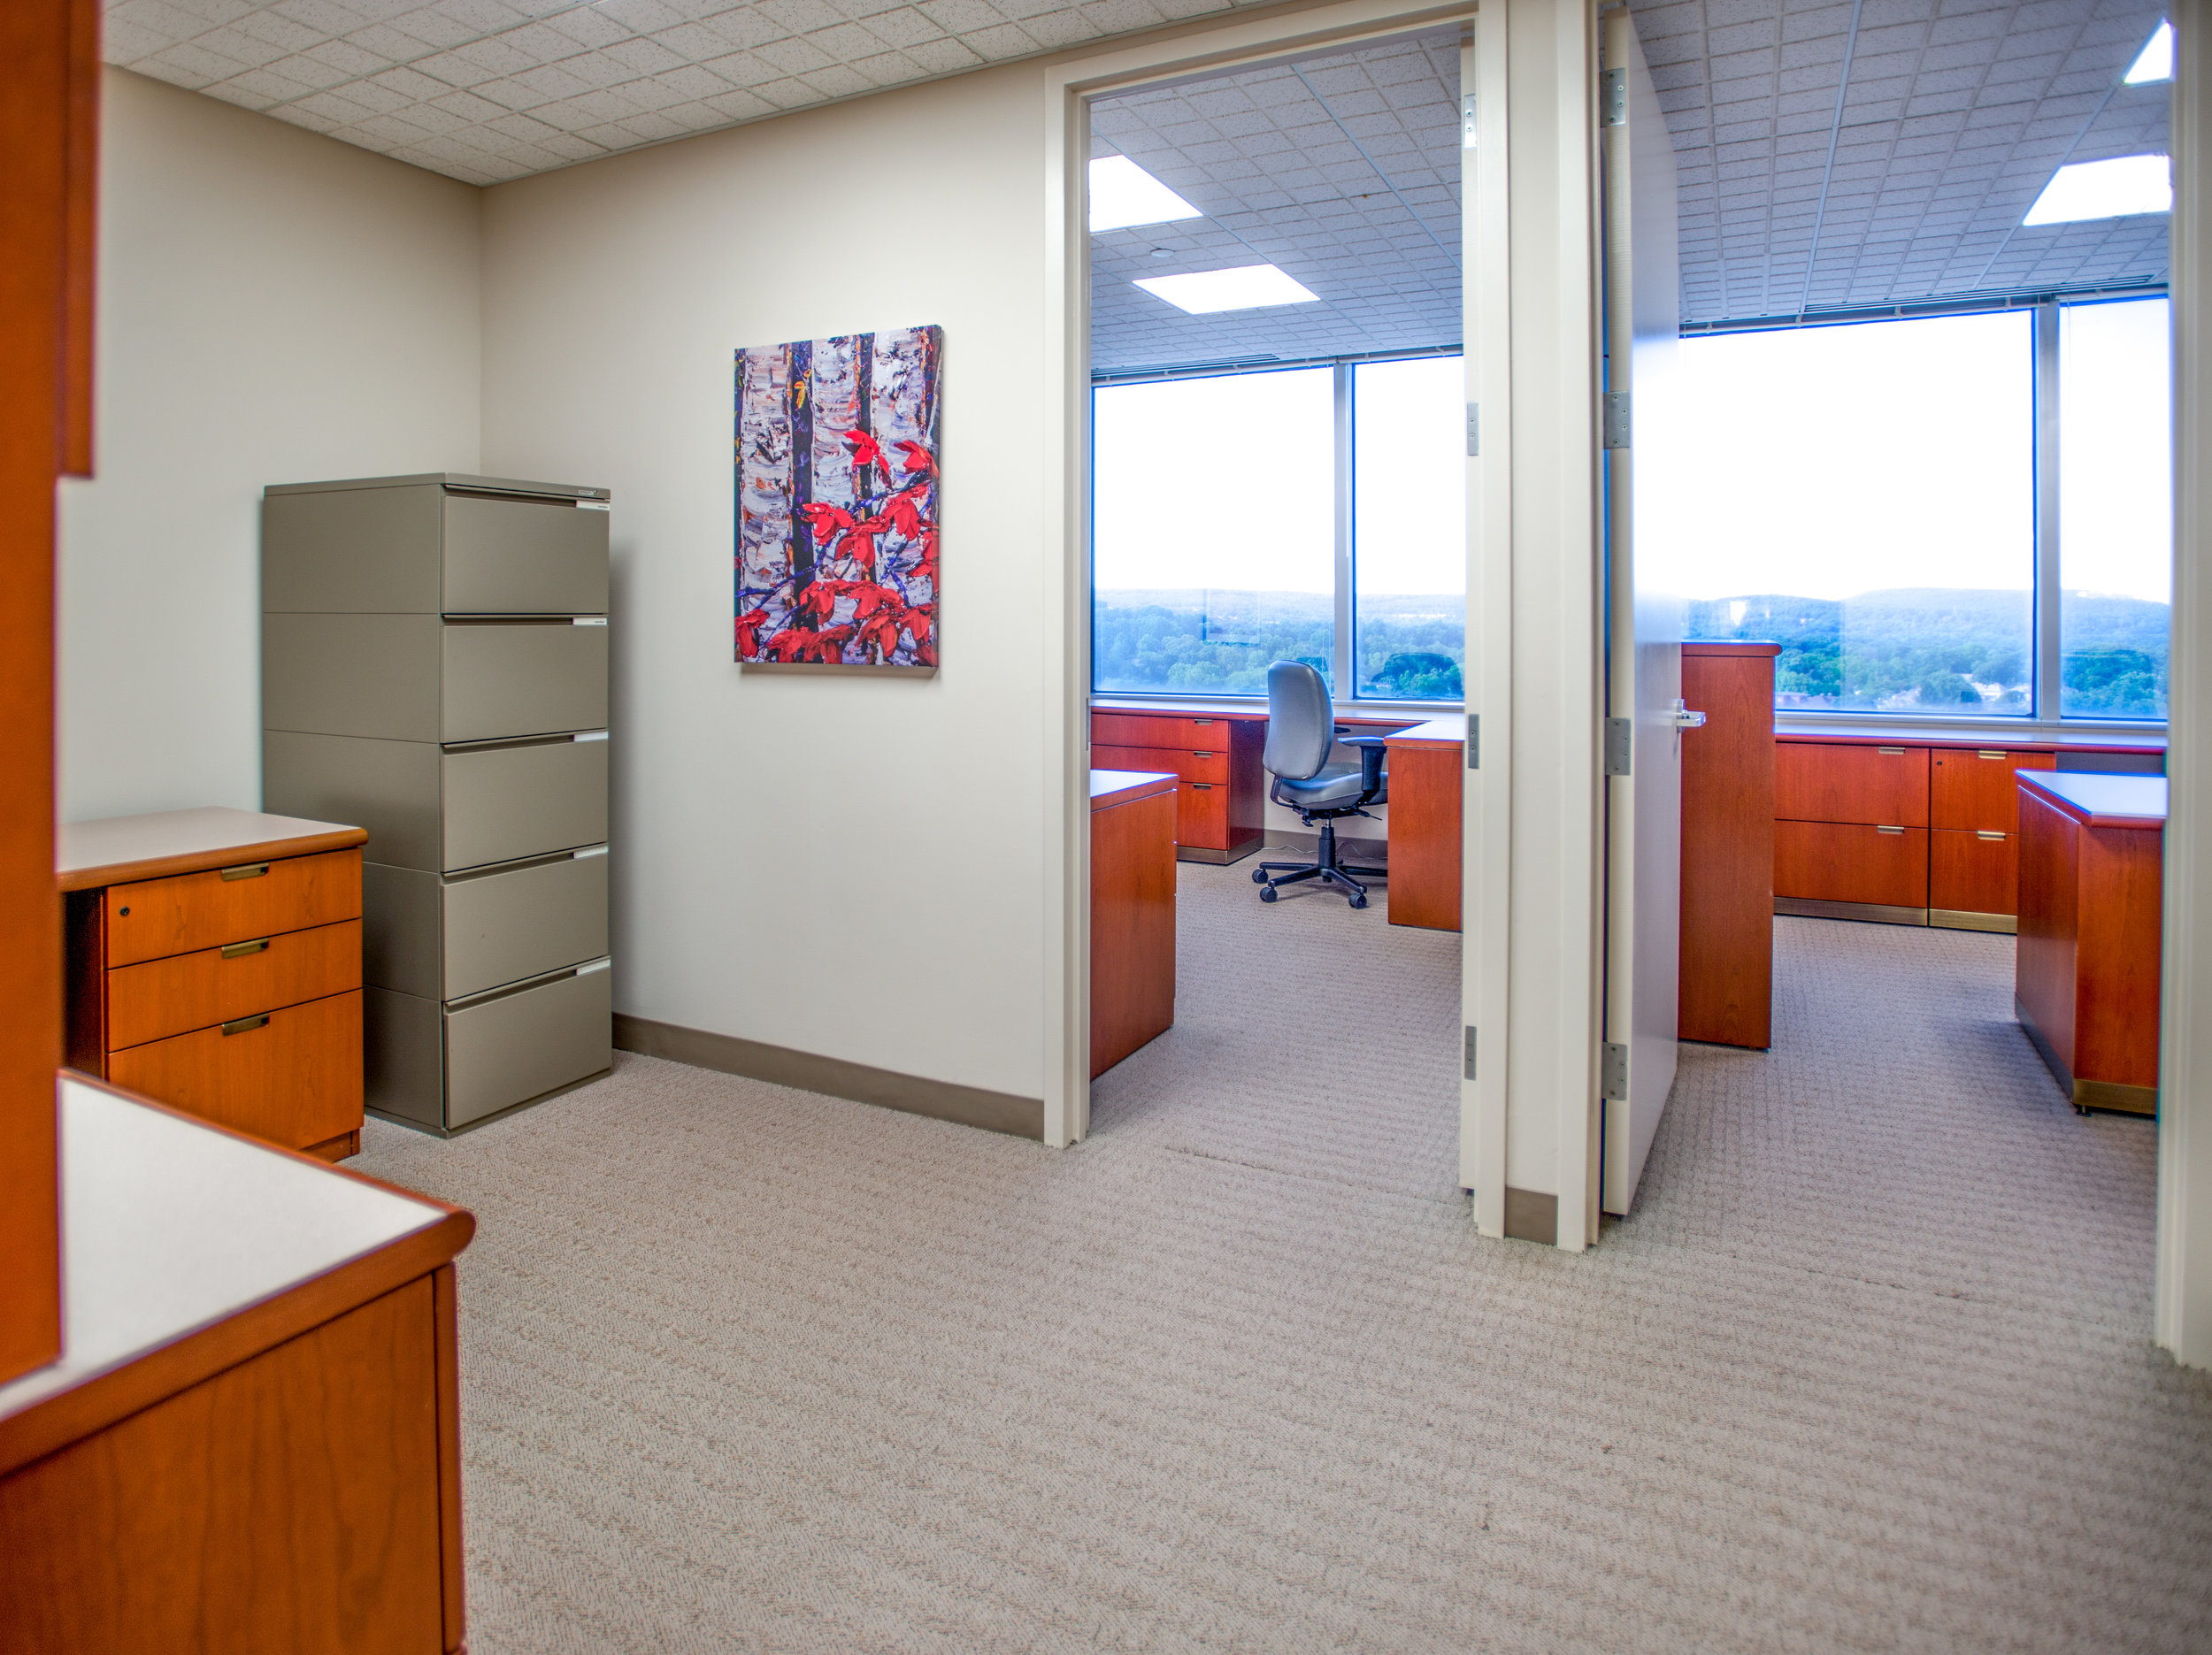 A three room/4 person Symphony Suite on the 14th Floor at Symphony Workplaces - Morristown